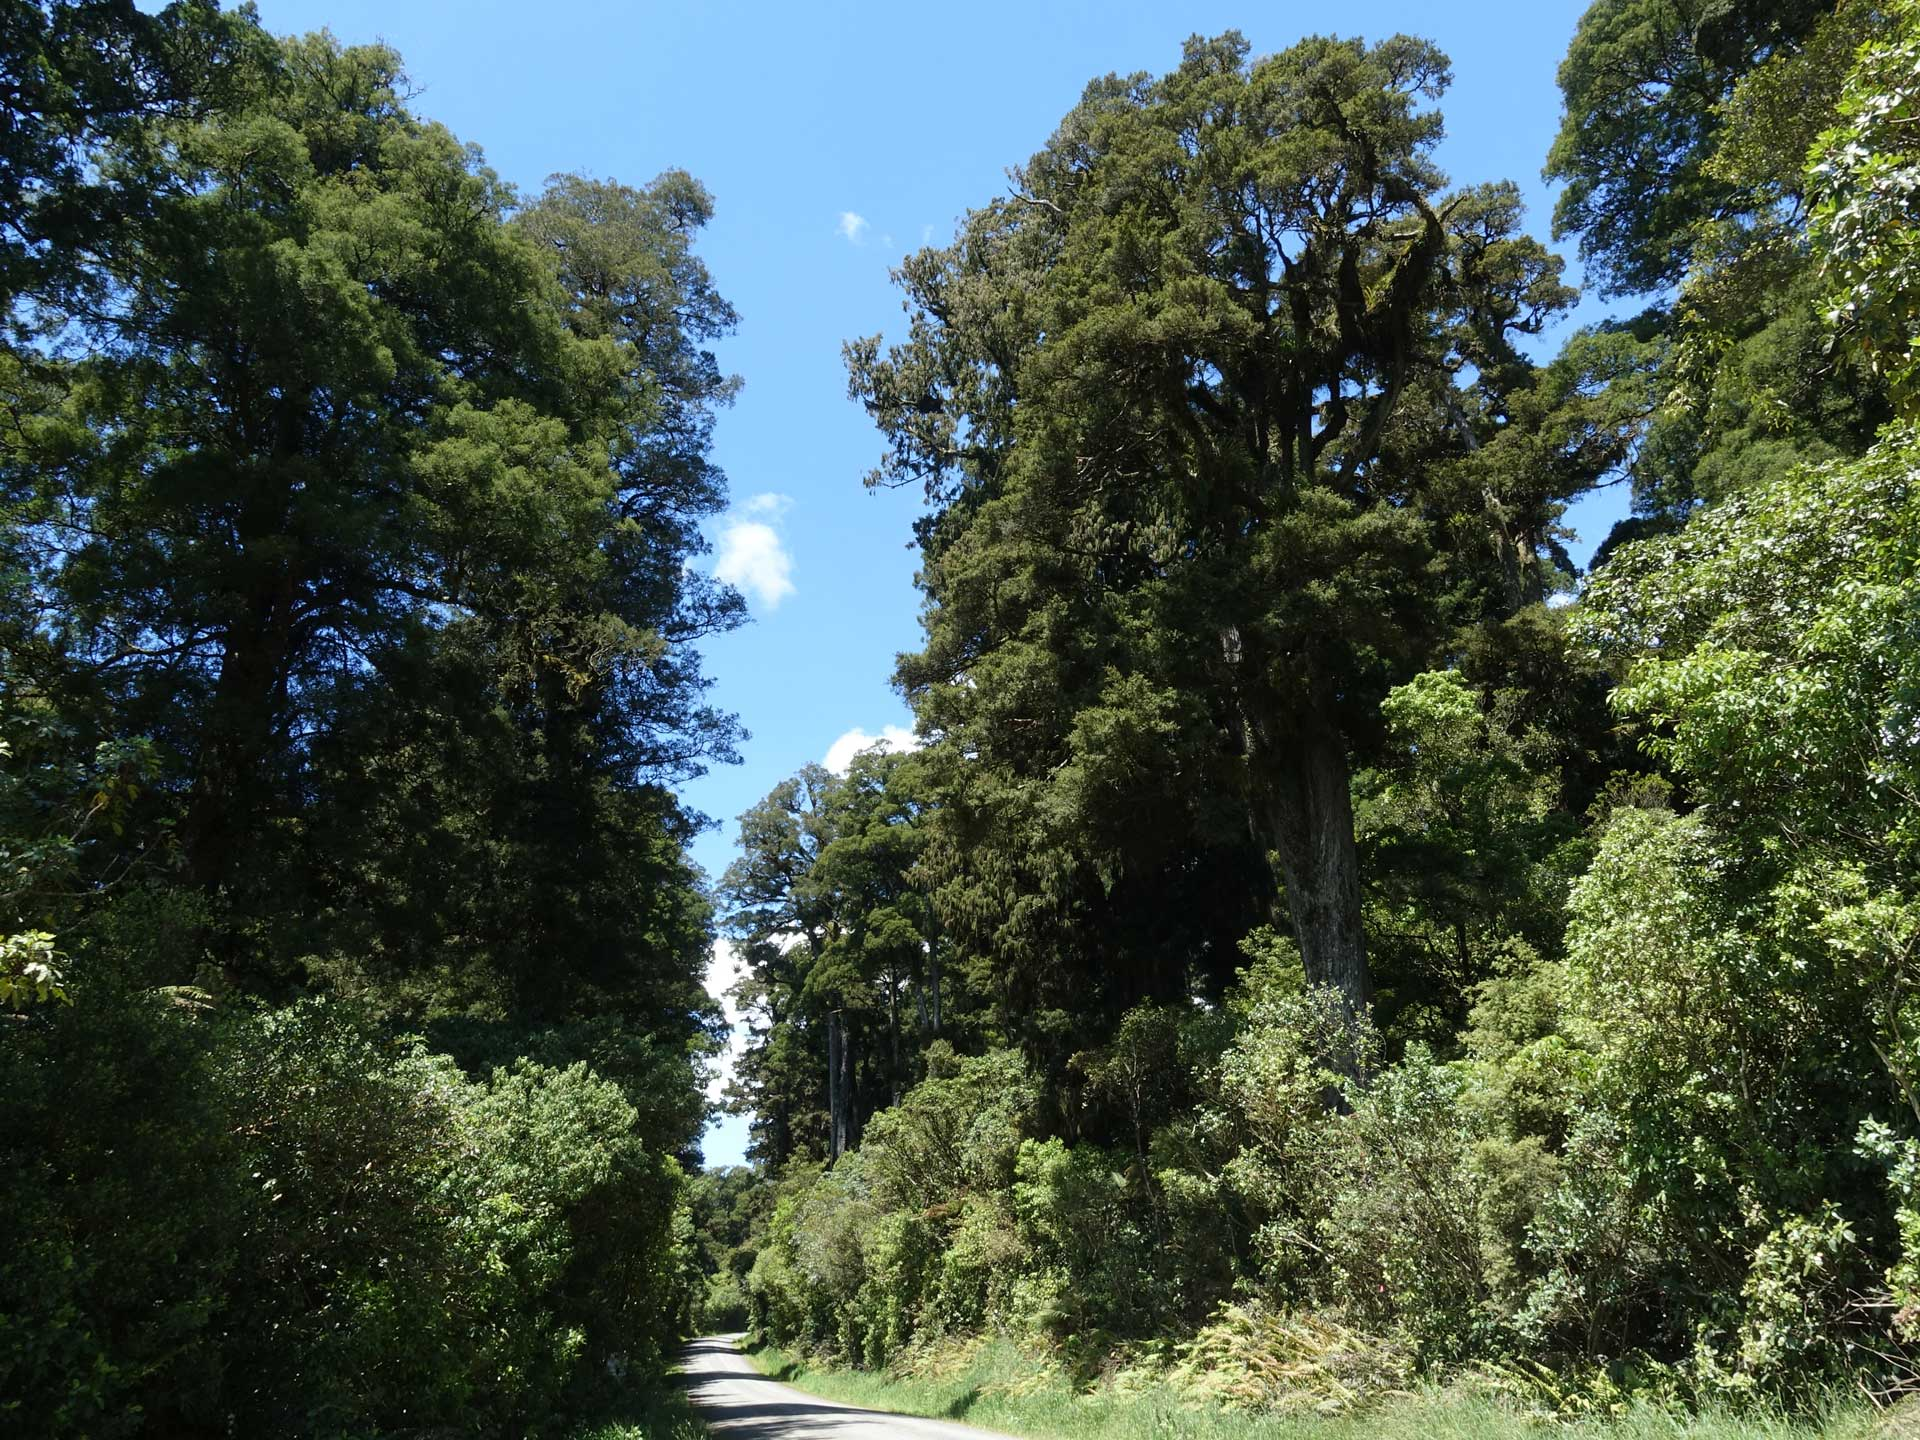 Mixed podocarp forest, Pureora